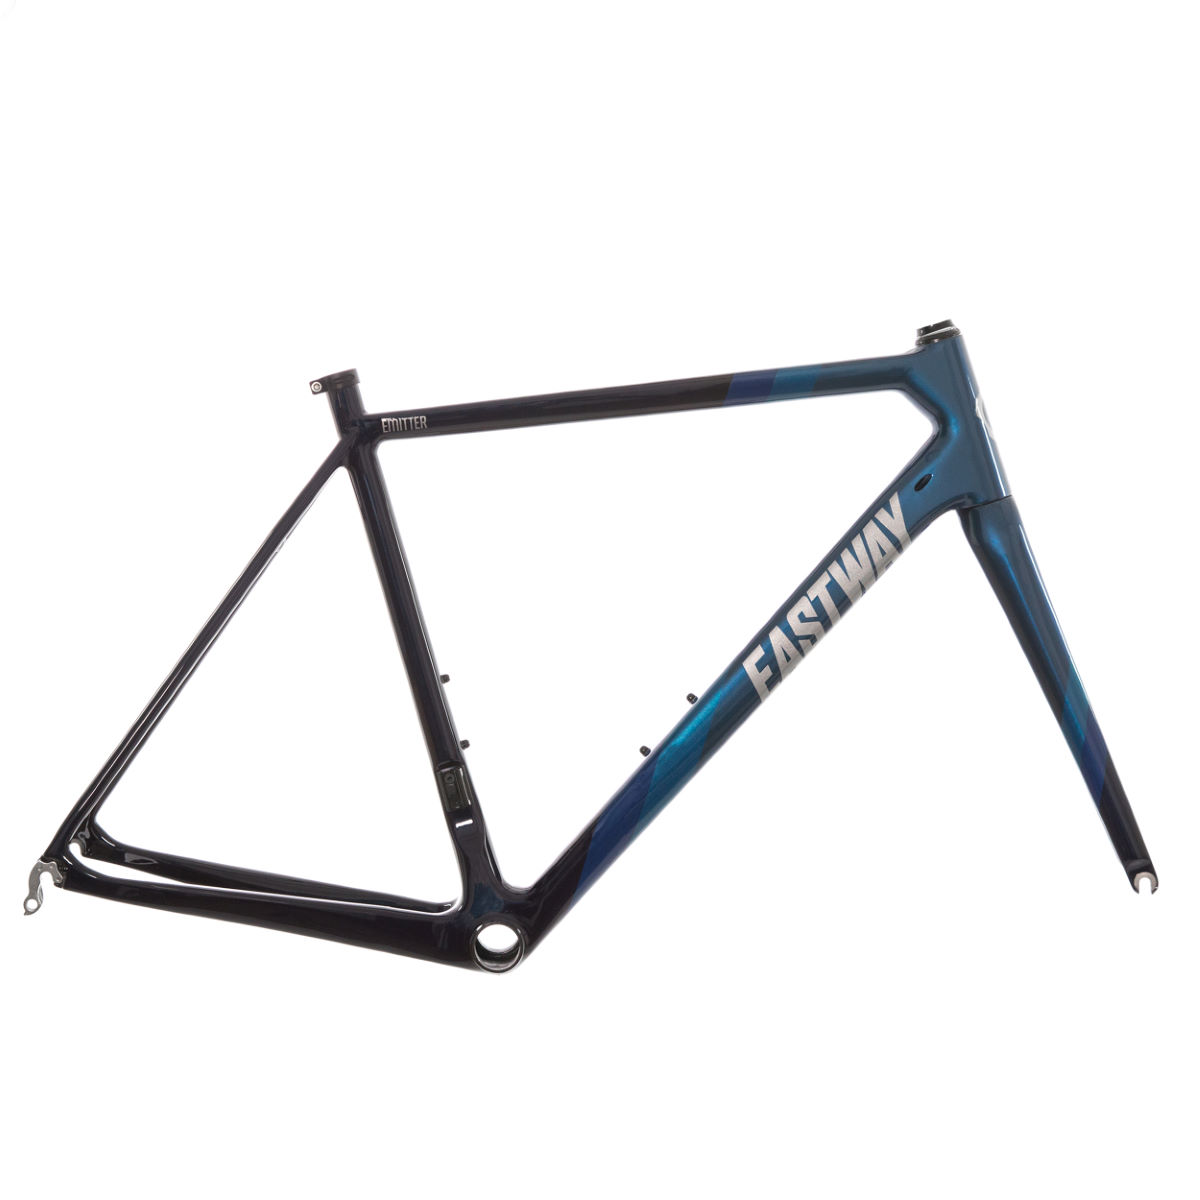 7f34d13b90b Eastway Products at Wiggle Cycles | Snowboard Club UK